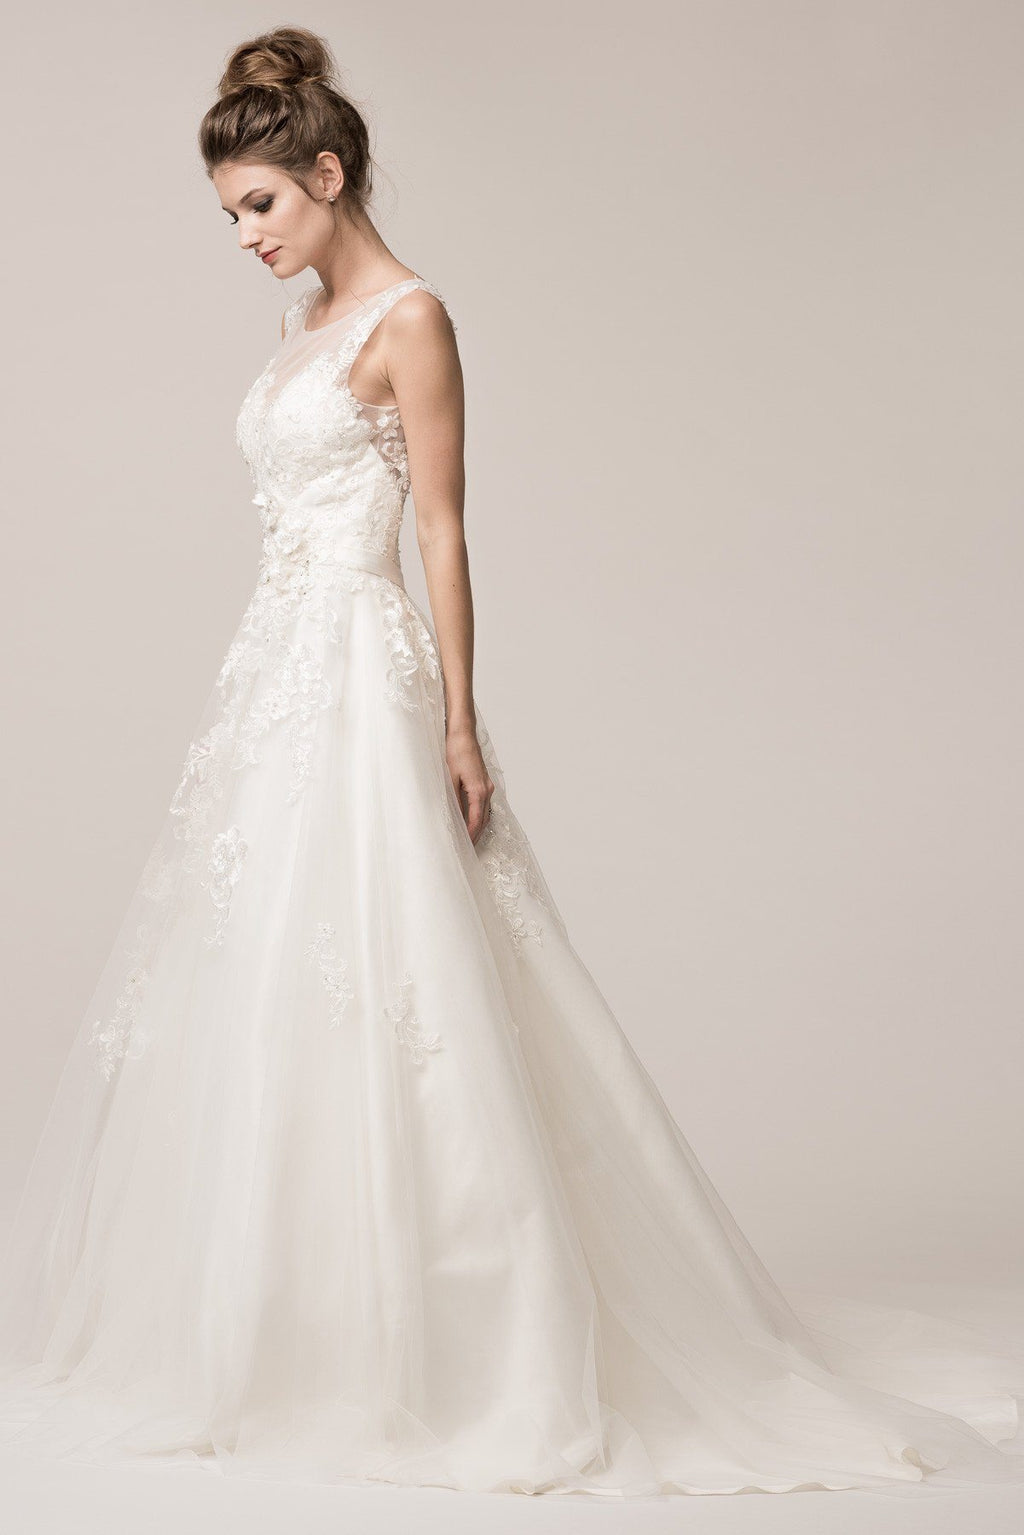 Princess Ball gown wedding dress BC#wjw2169 - Simply Fab Dress